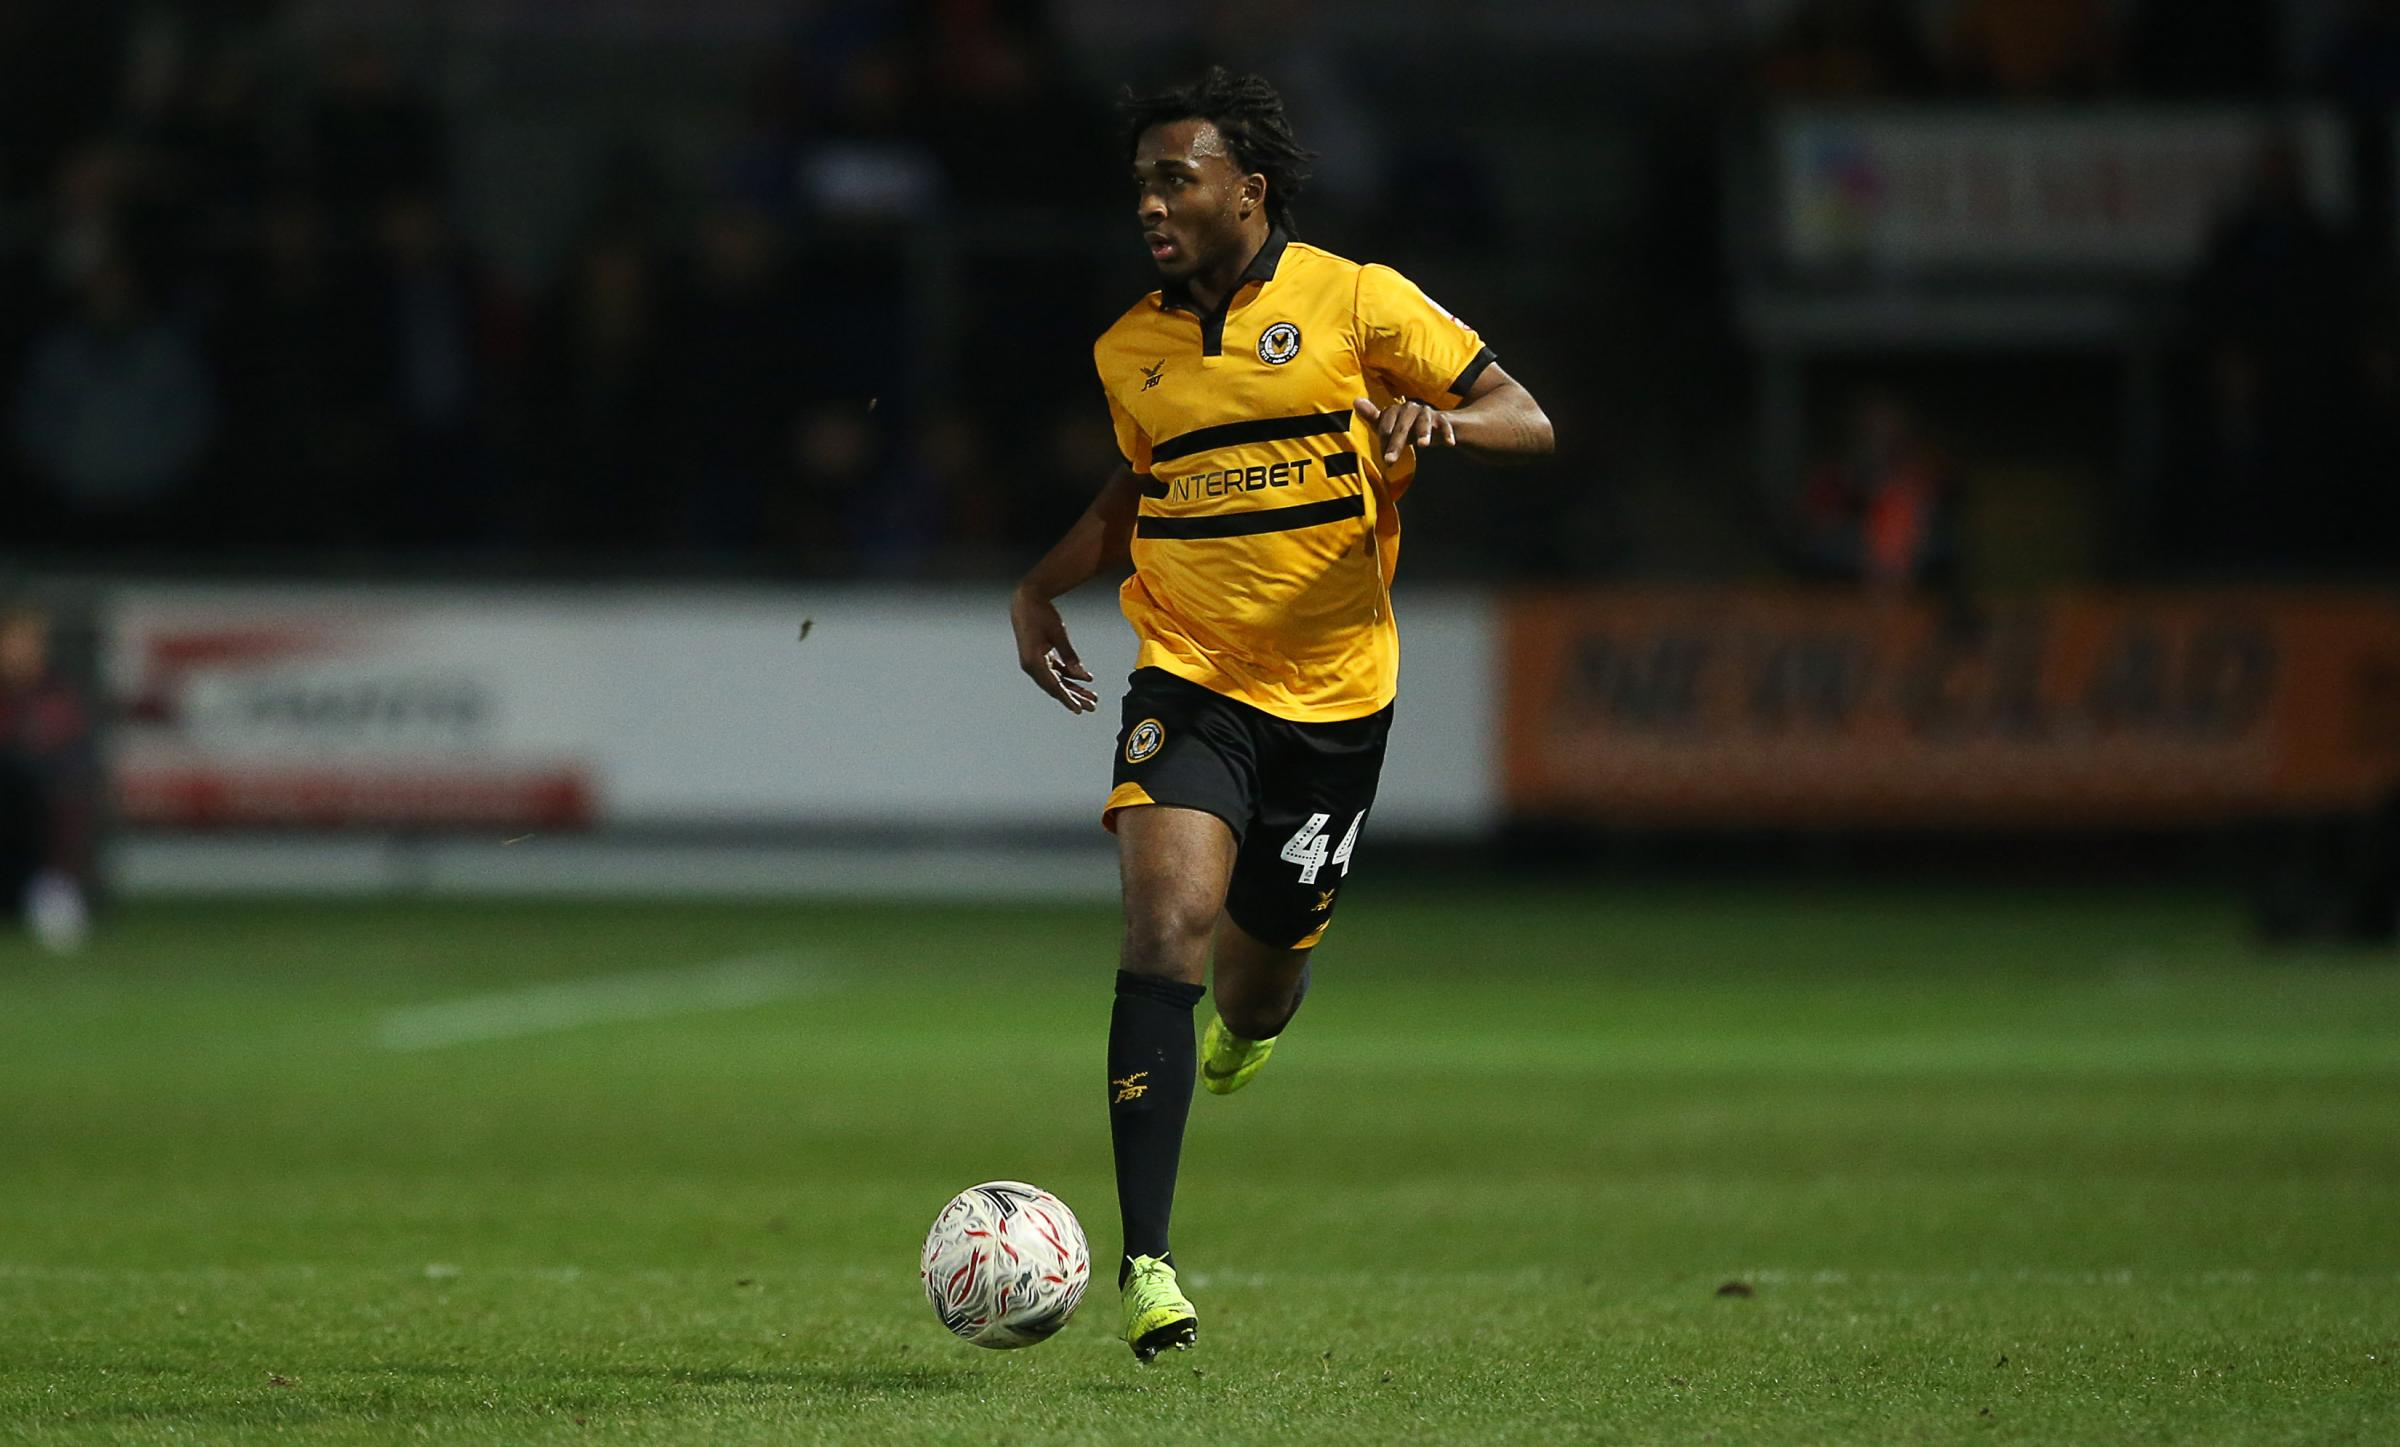 DEBUT: Vashon Neufville in action for Newport County against Leicester City in last week's FA Cup third-round tie